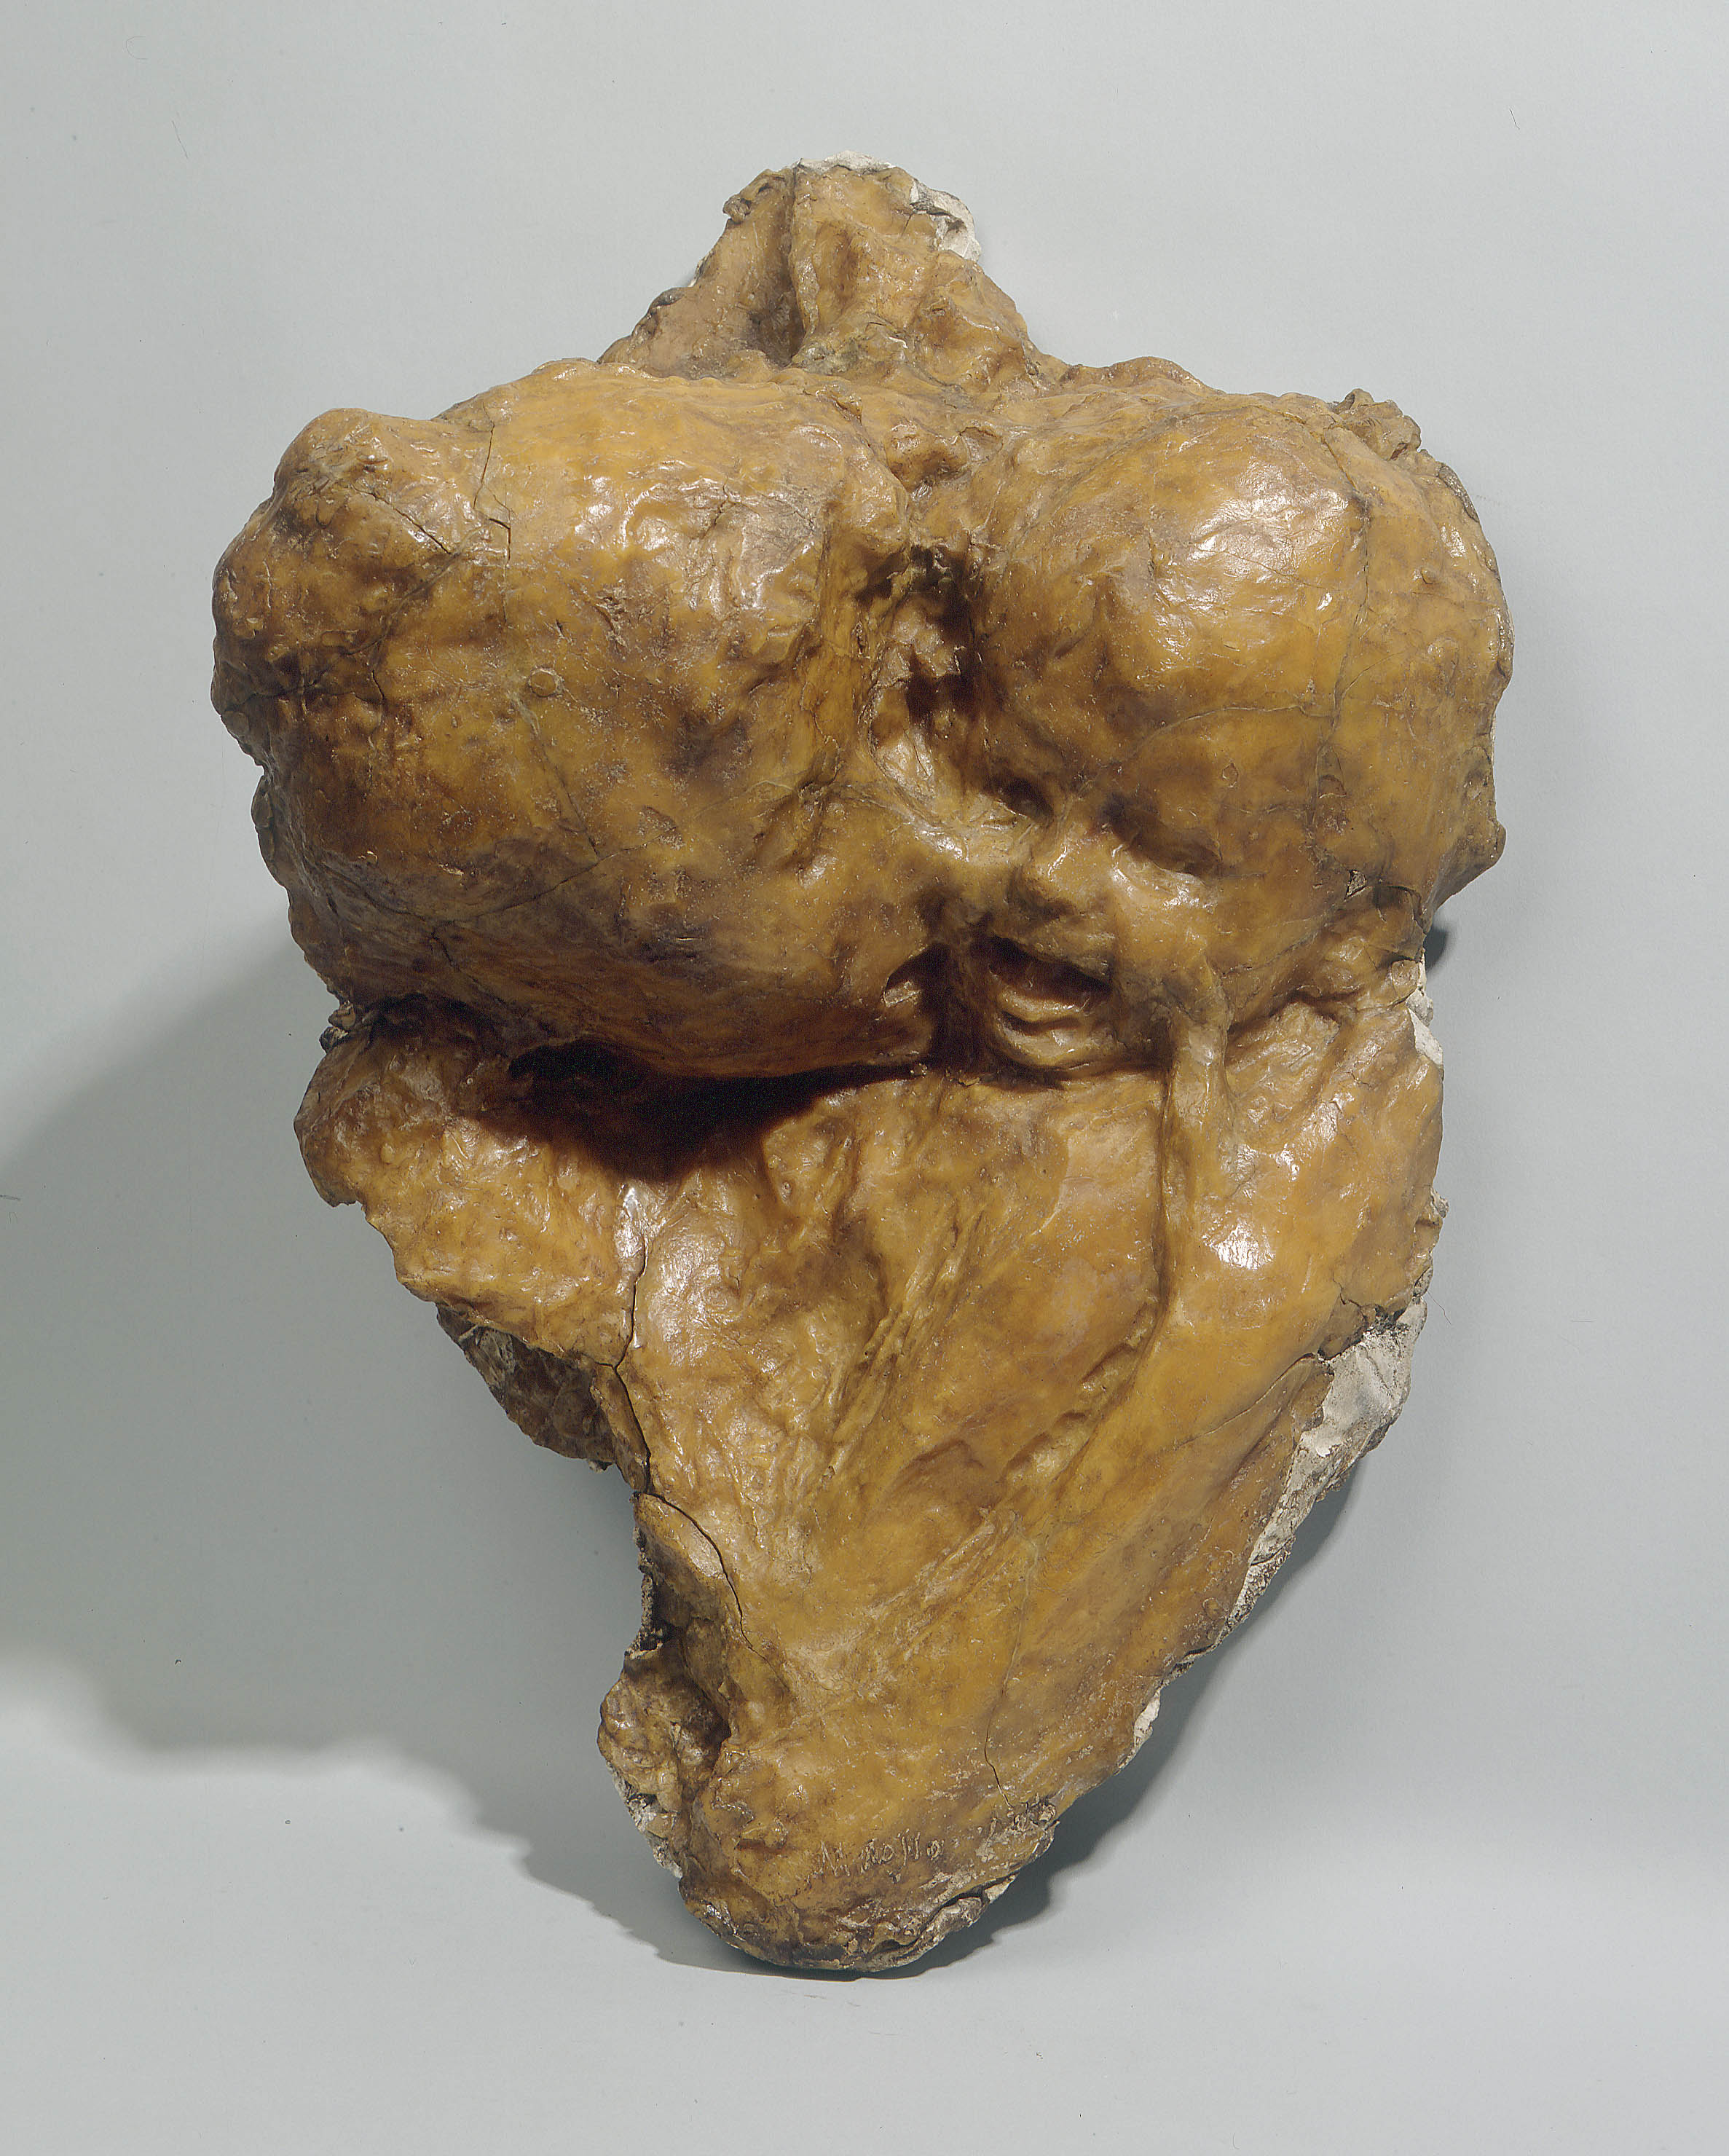 Medardo Rosso - Aetas Aurea (The Golden Age)